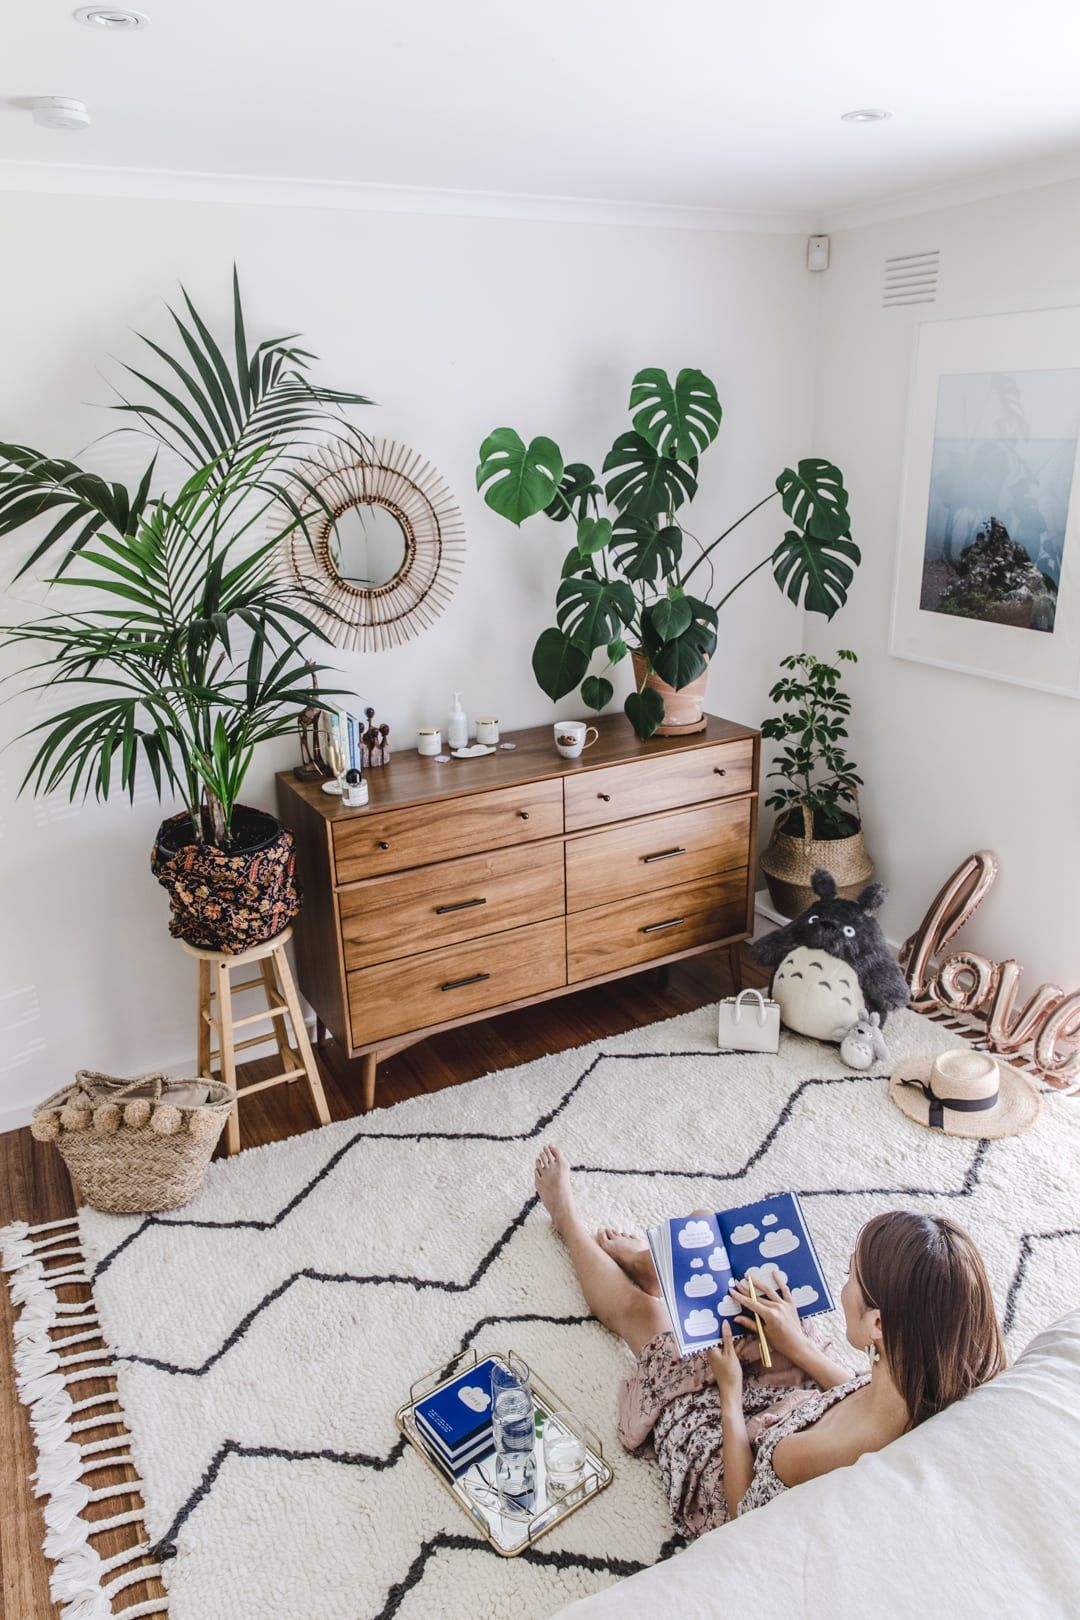 25 Mid Century Bedroom Design Ideas: These 10 Bedroom Rug Ideas Will Give Your Floorboards A